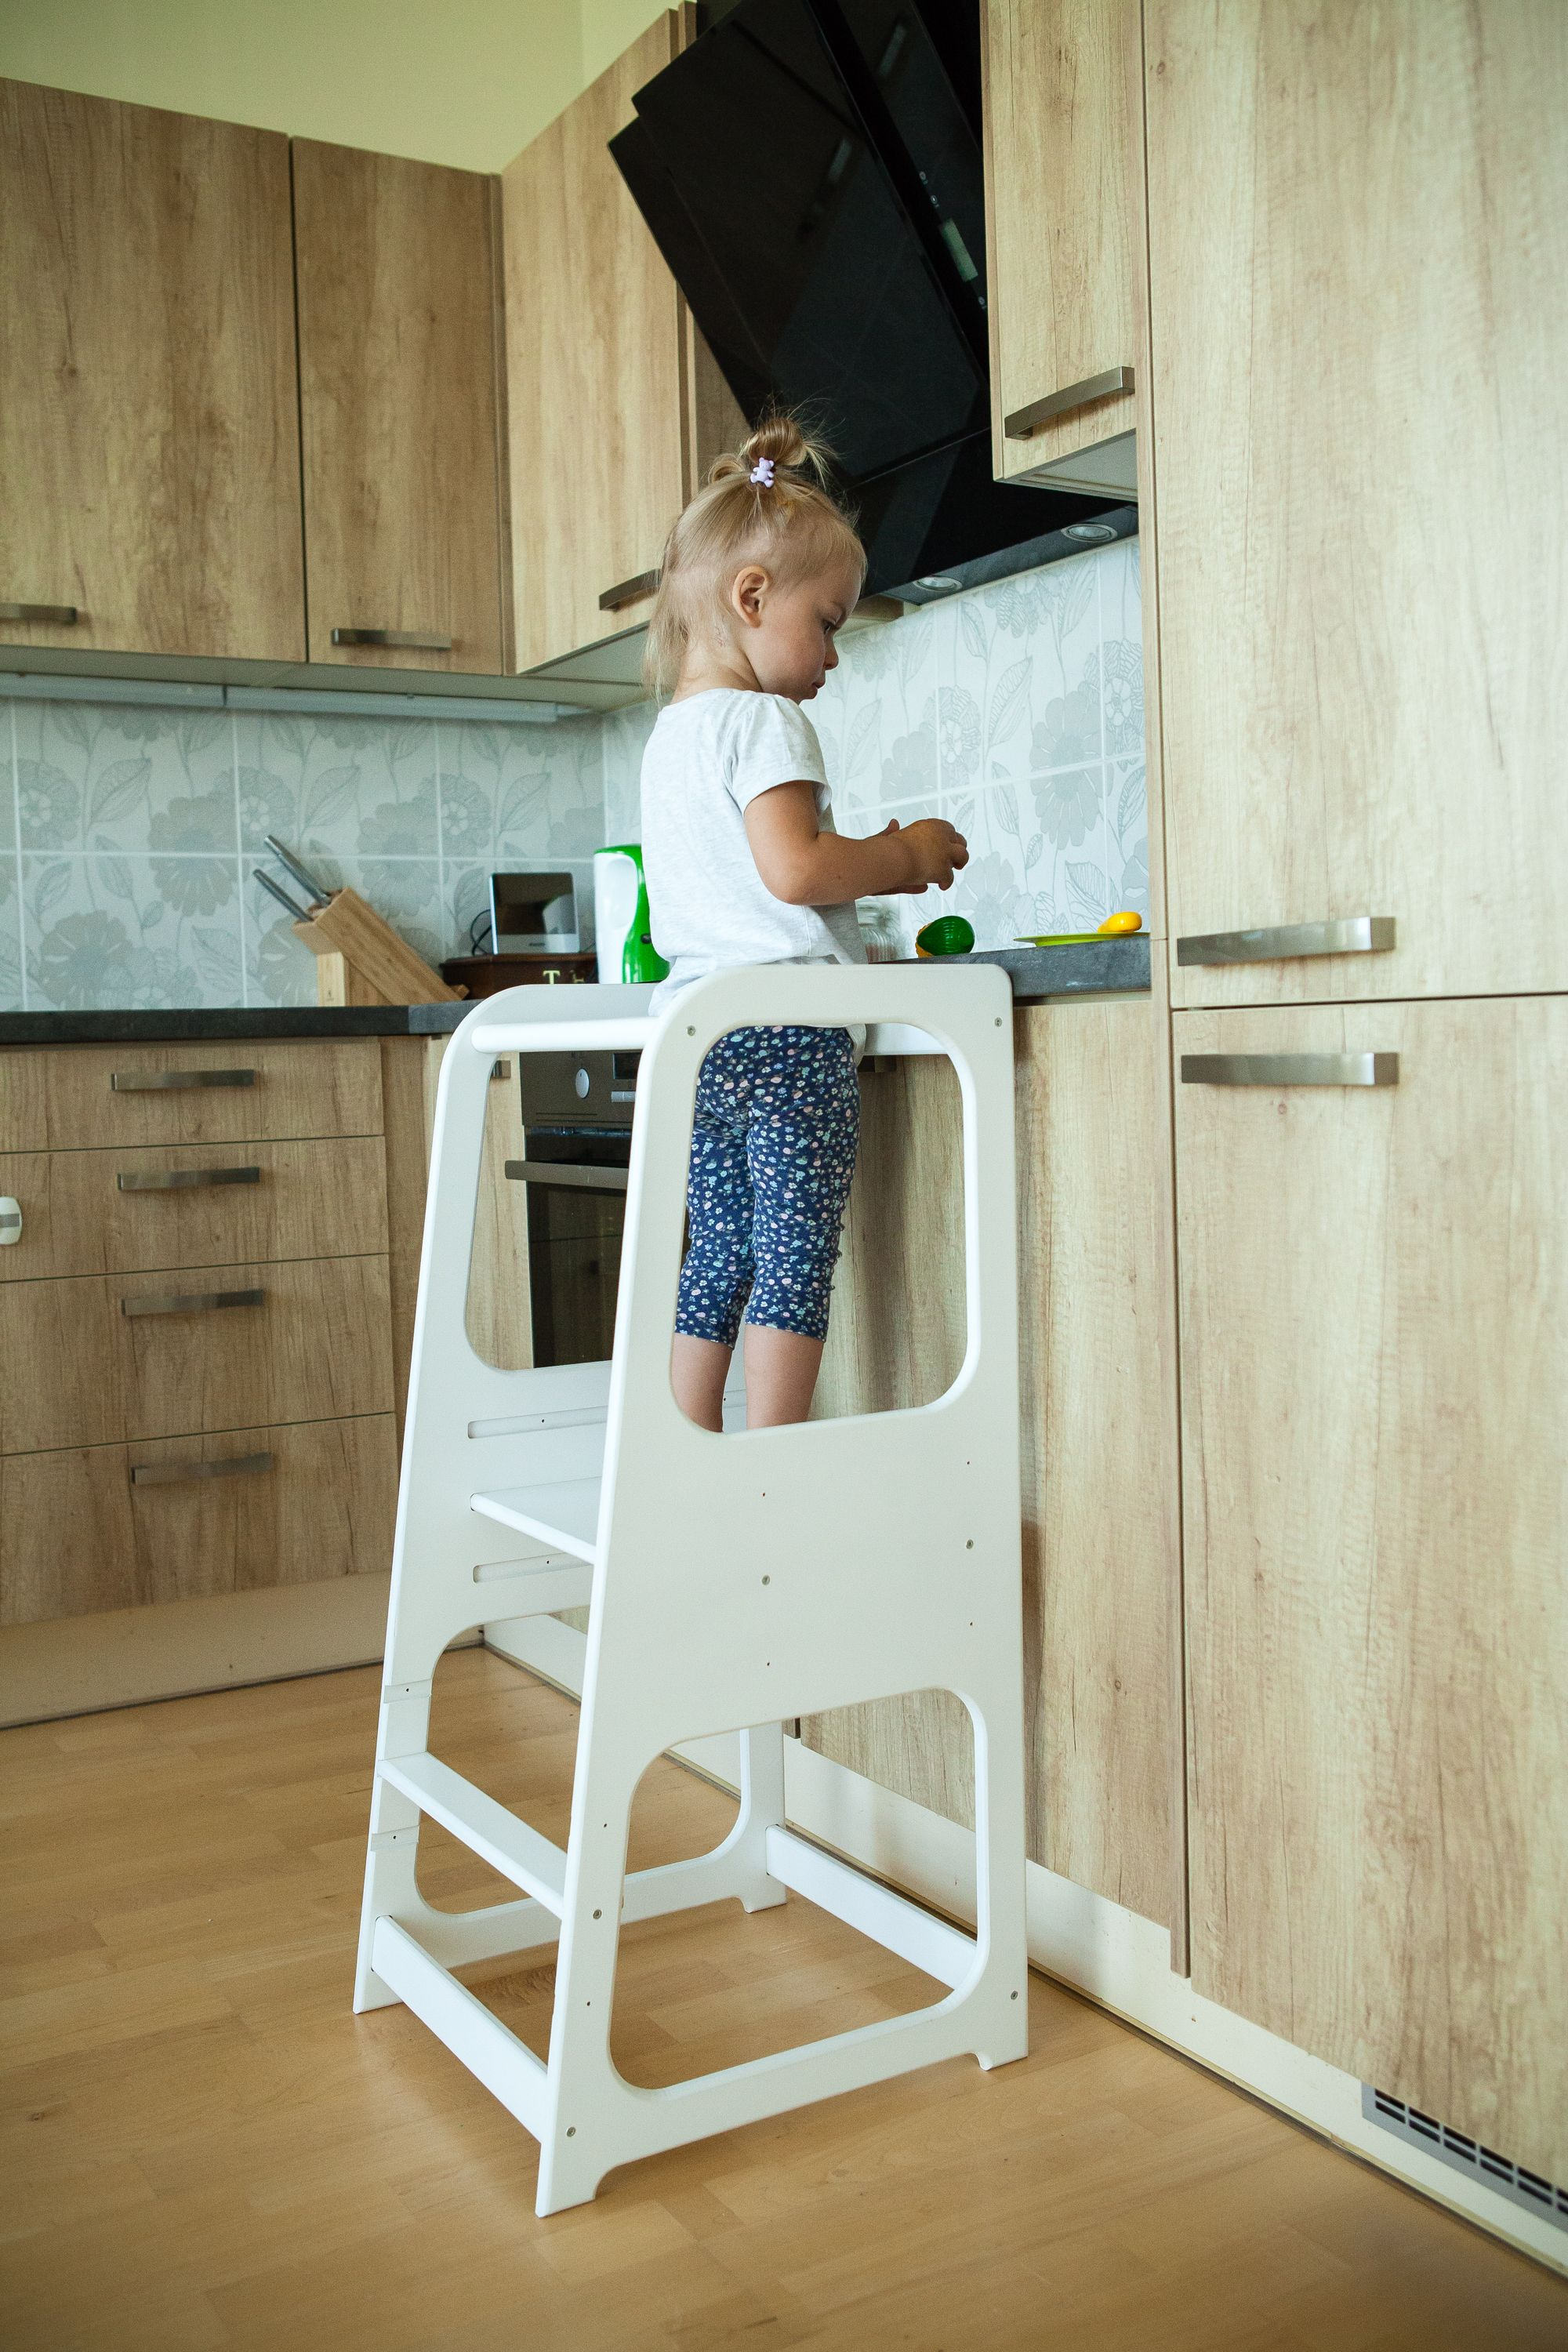 Learning Tower Kitchen Helper Stool Safety